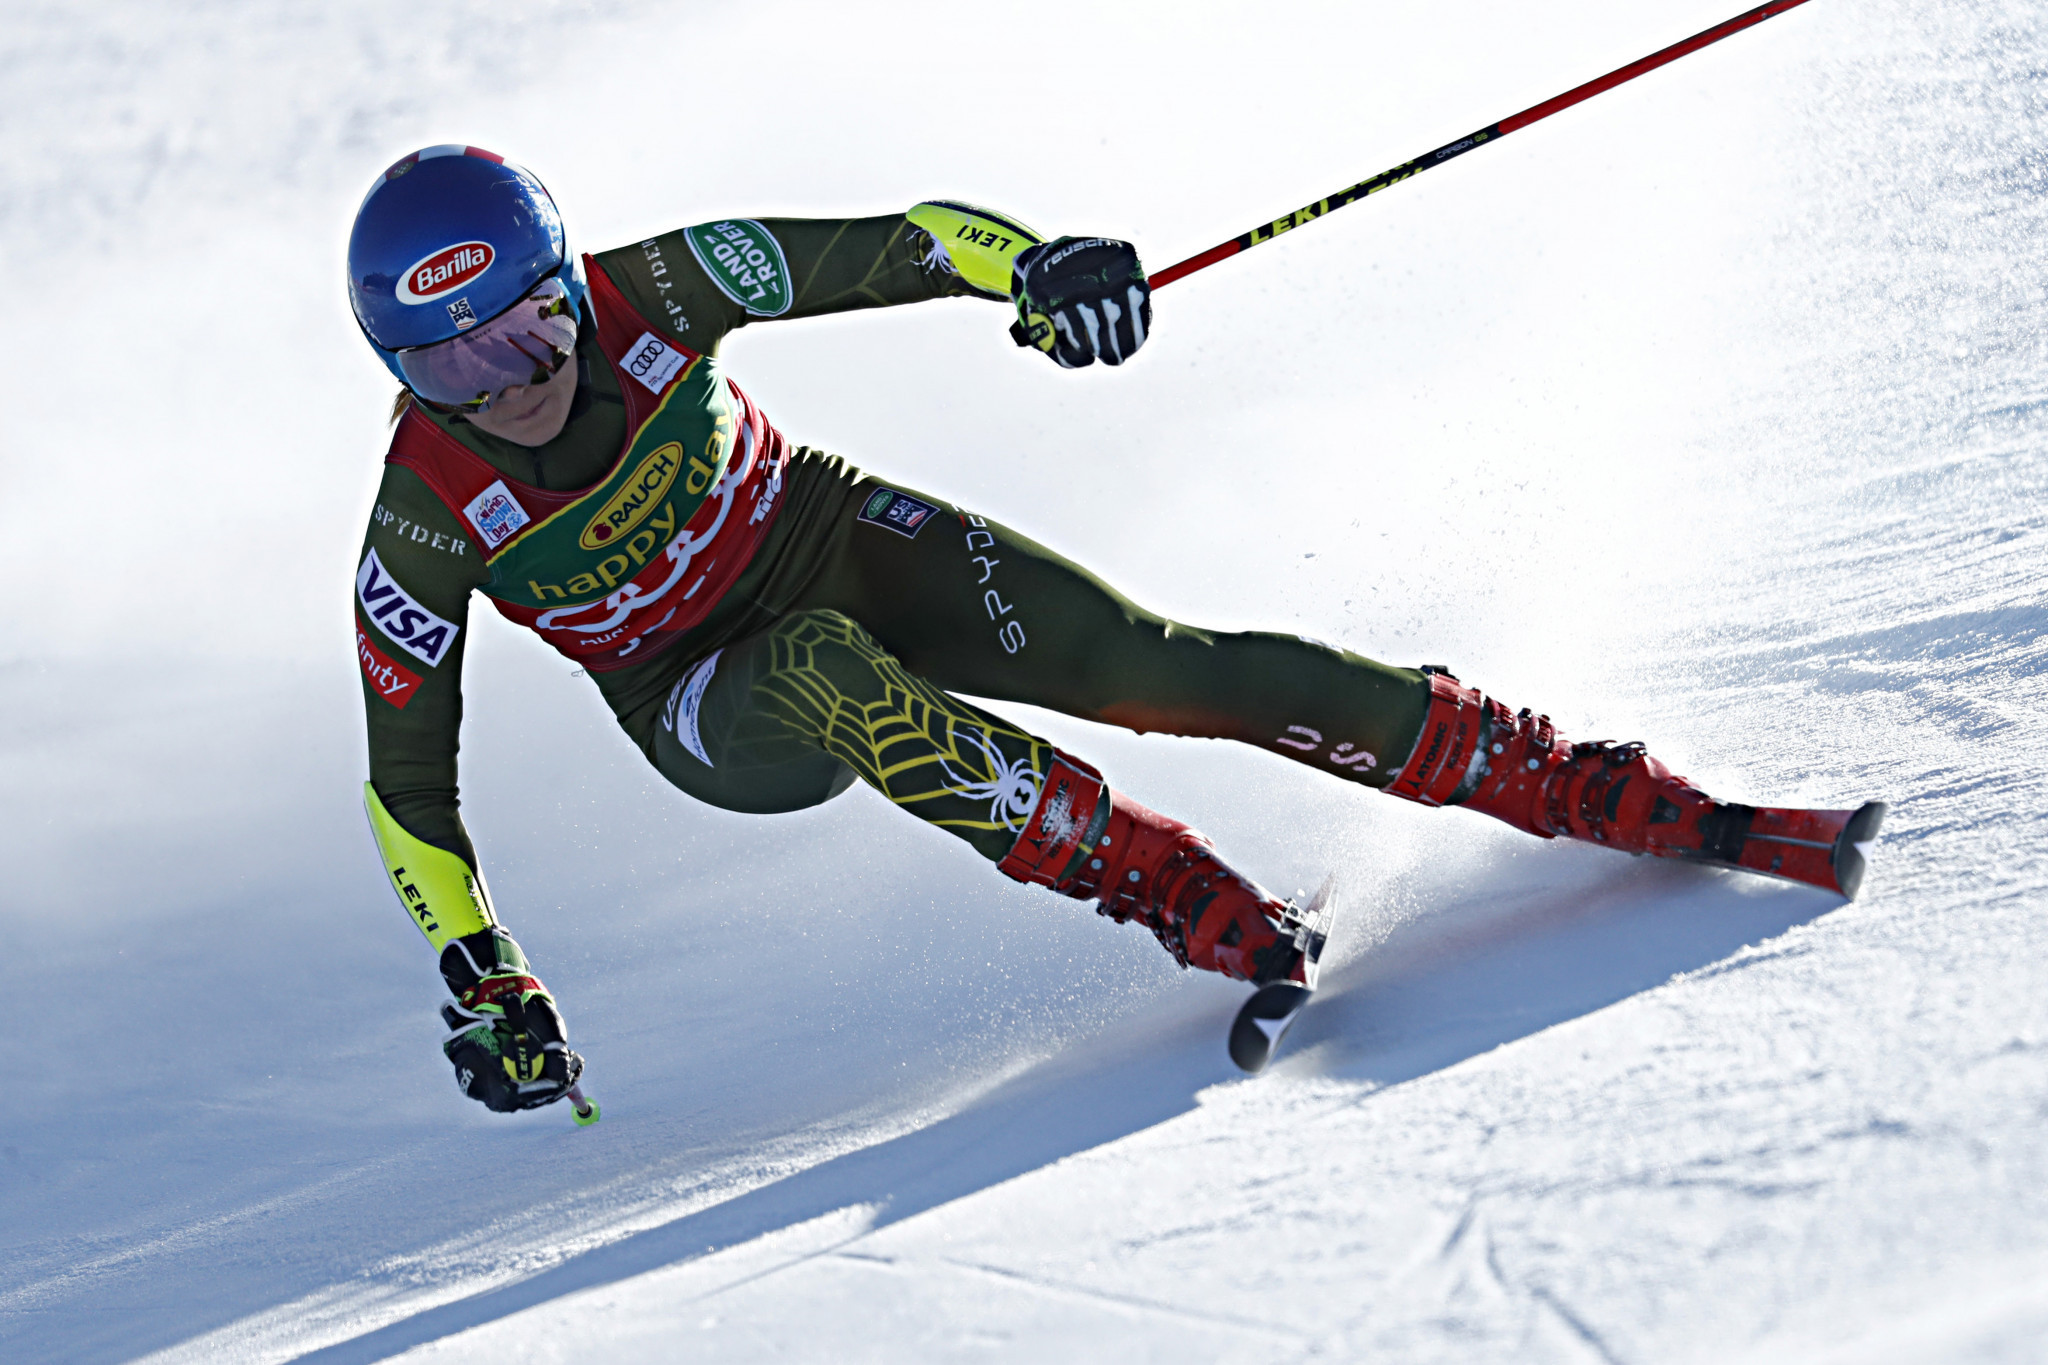 Levi to host opening slalom races of FIS Alpine Skiing World Cup season